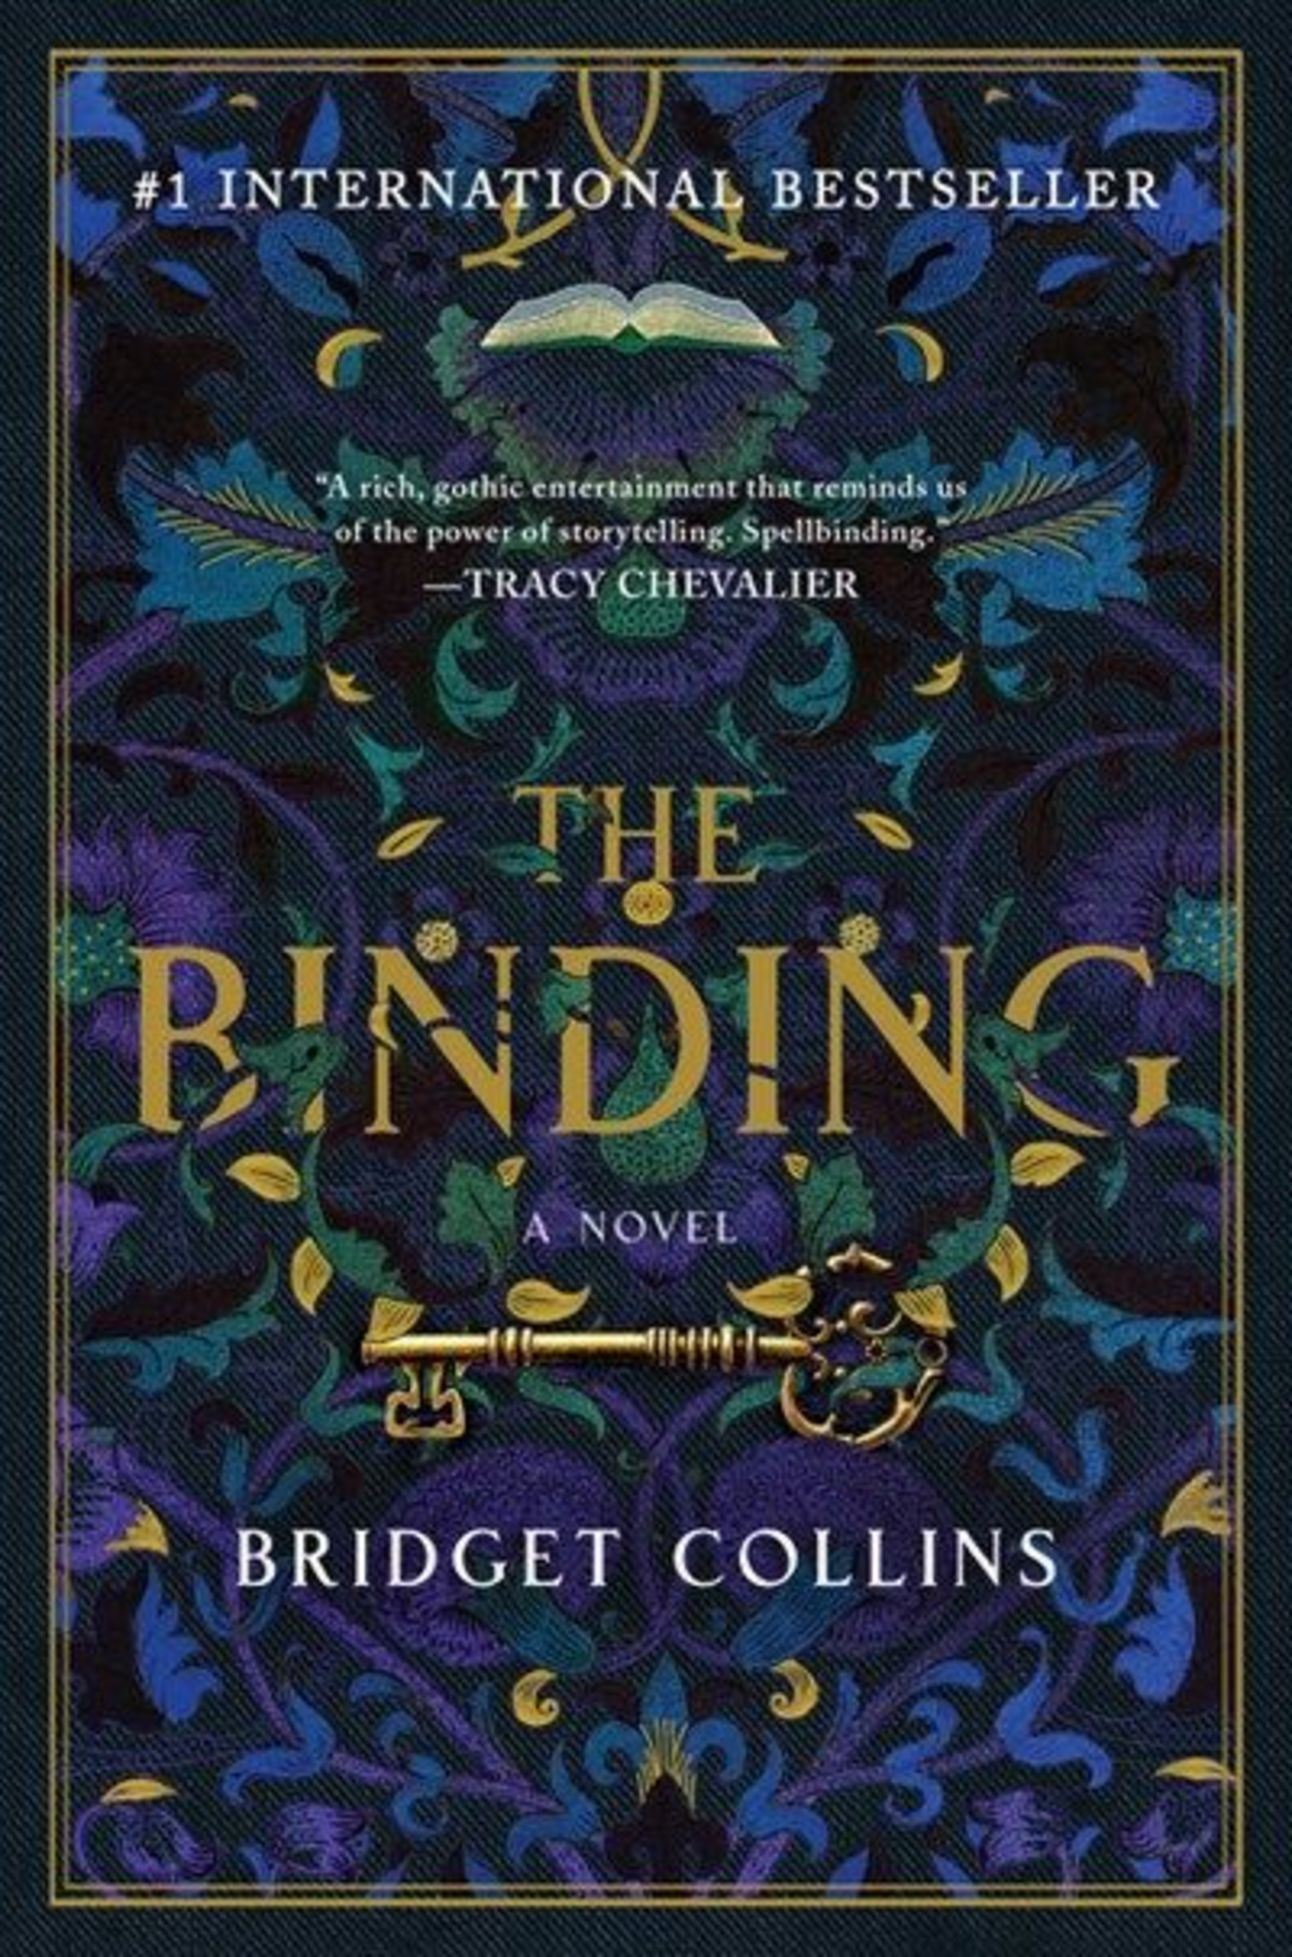 binding-bridget collins